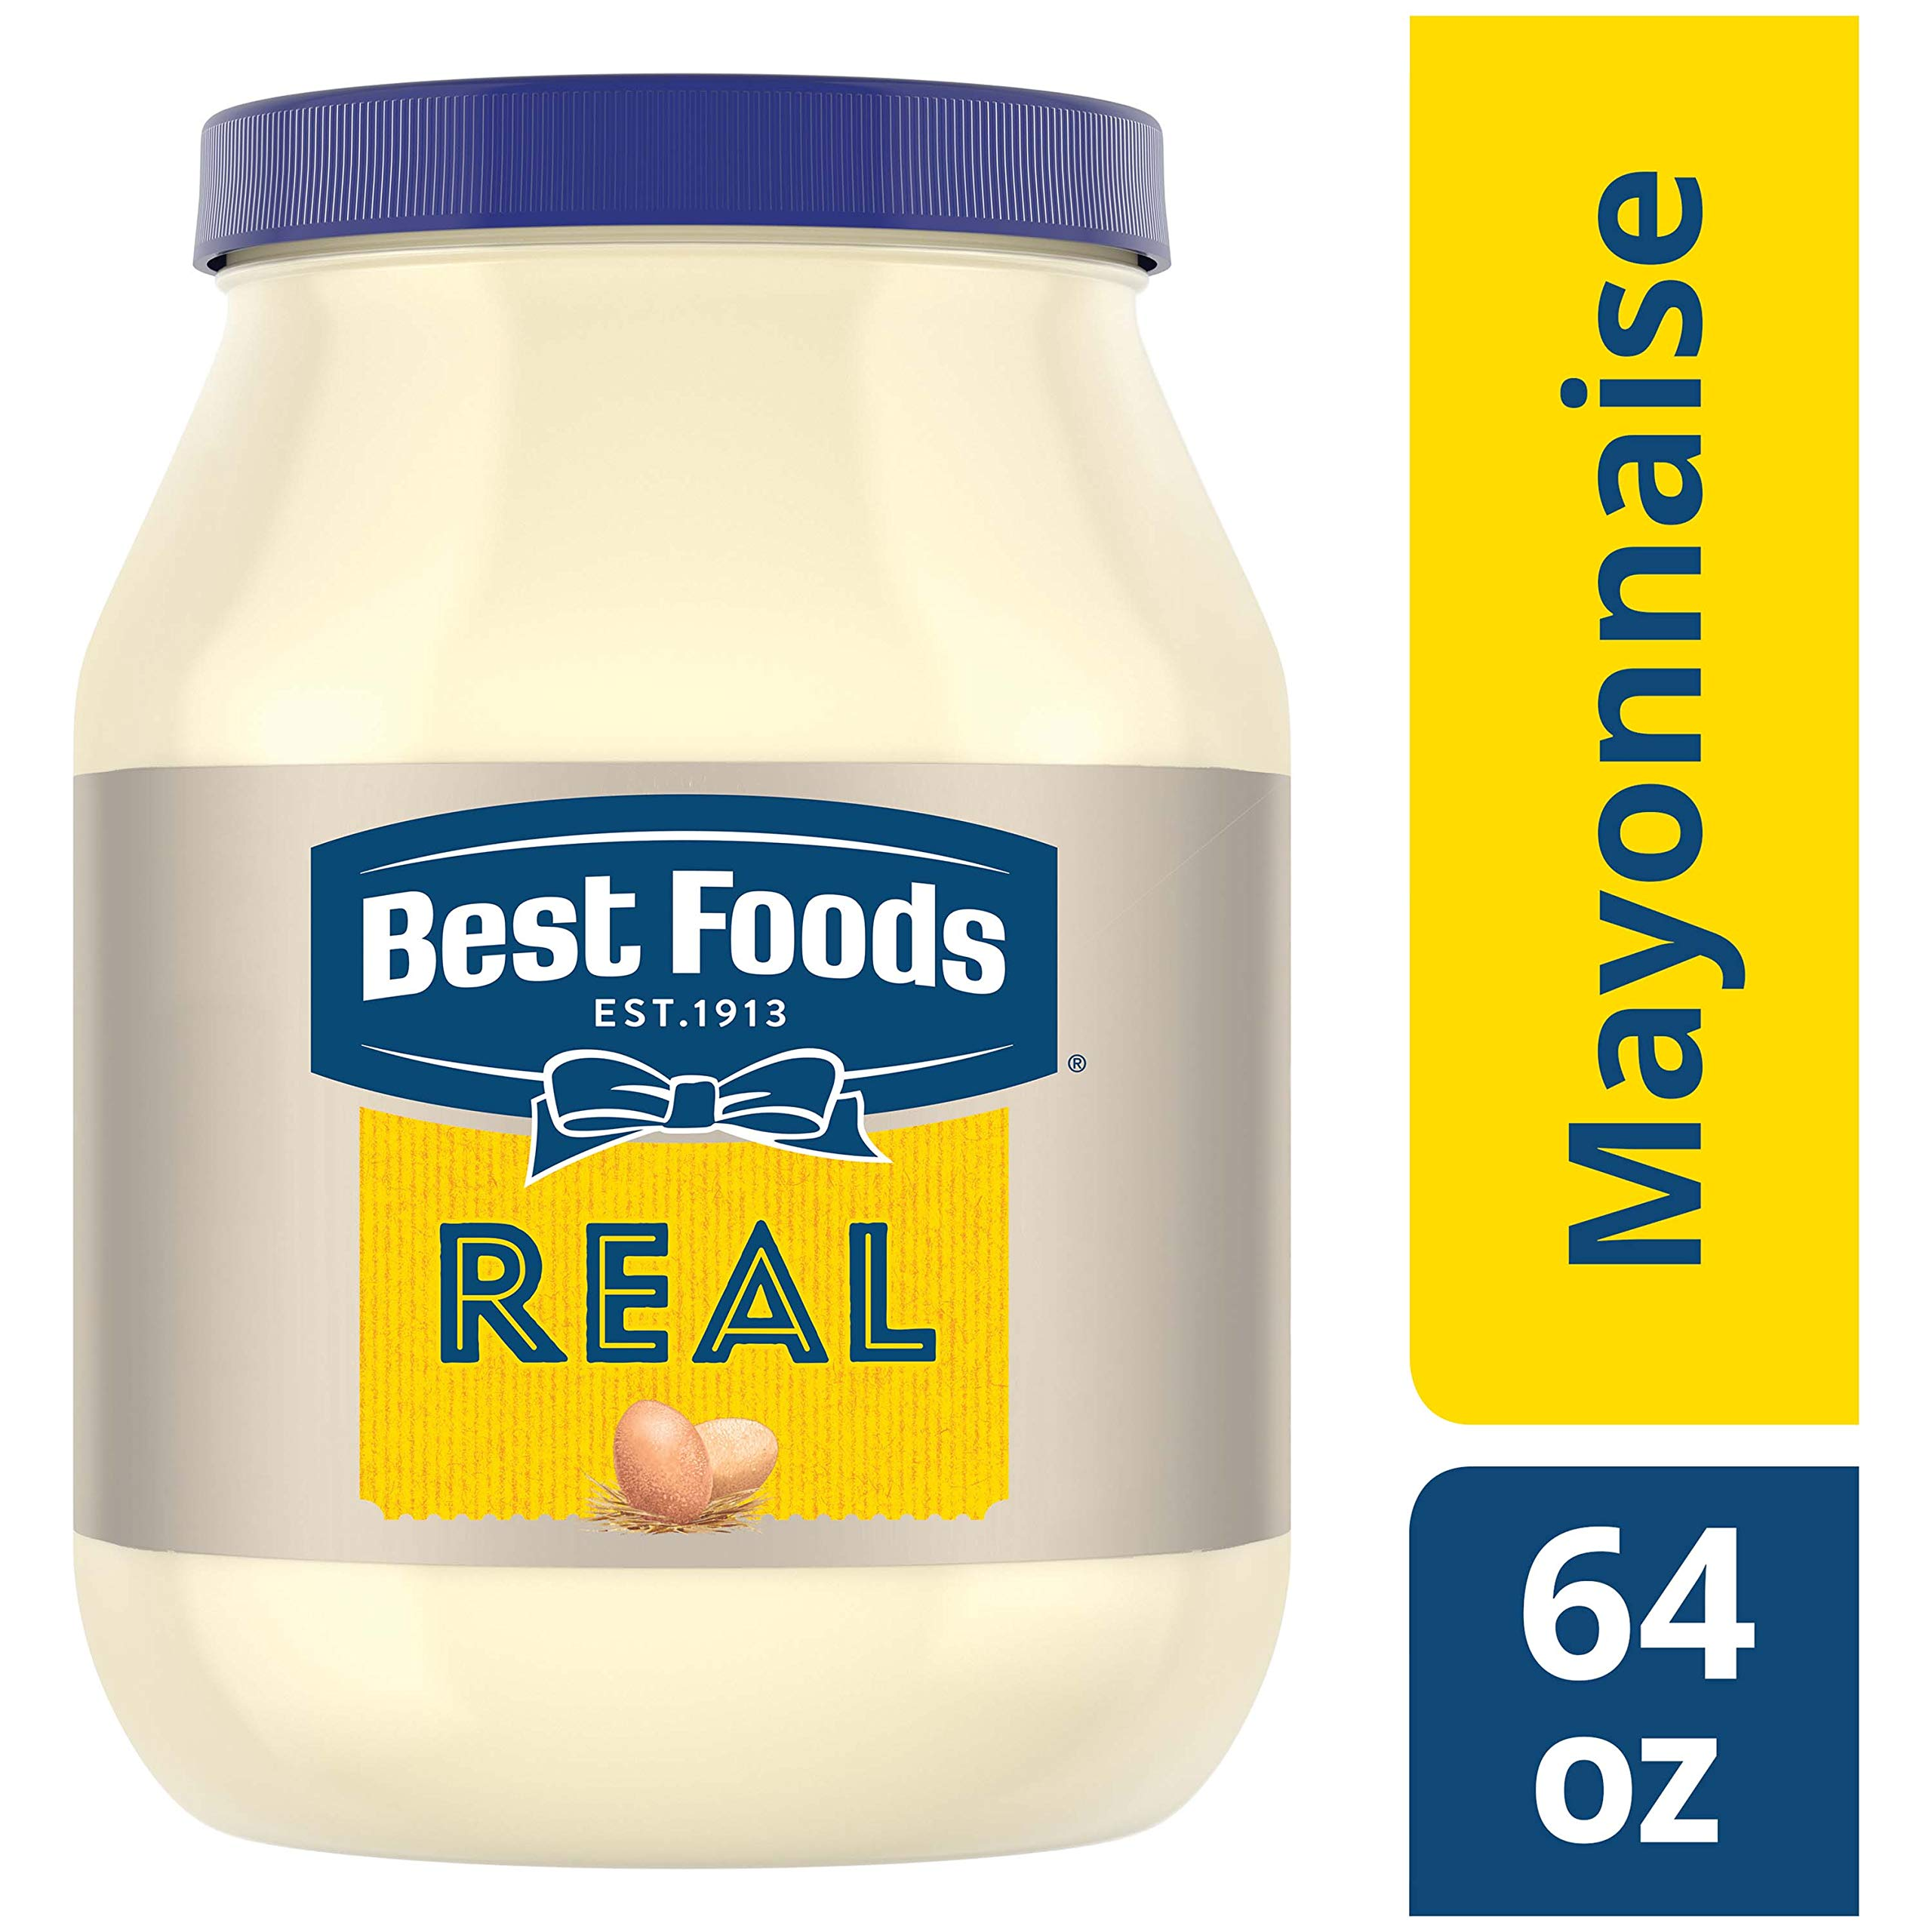 Best Foods Real Mayonnaise - 64 oz